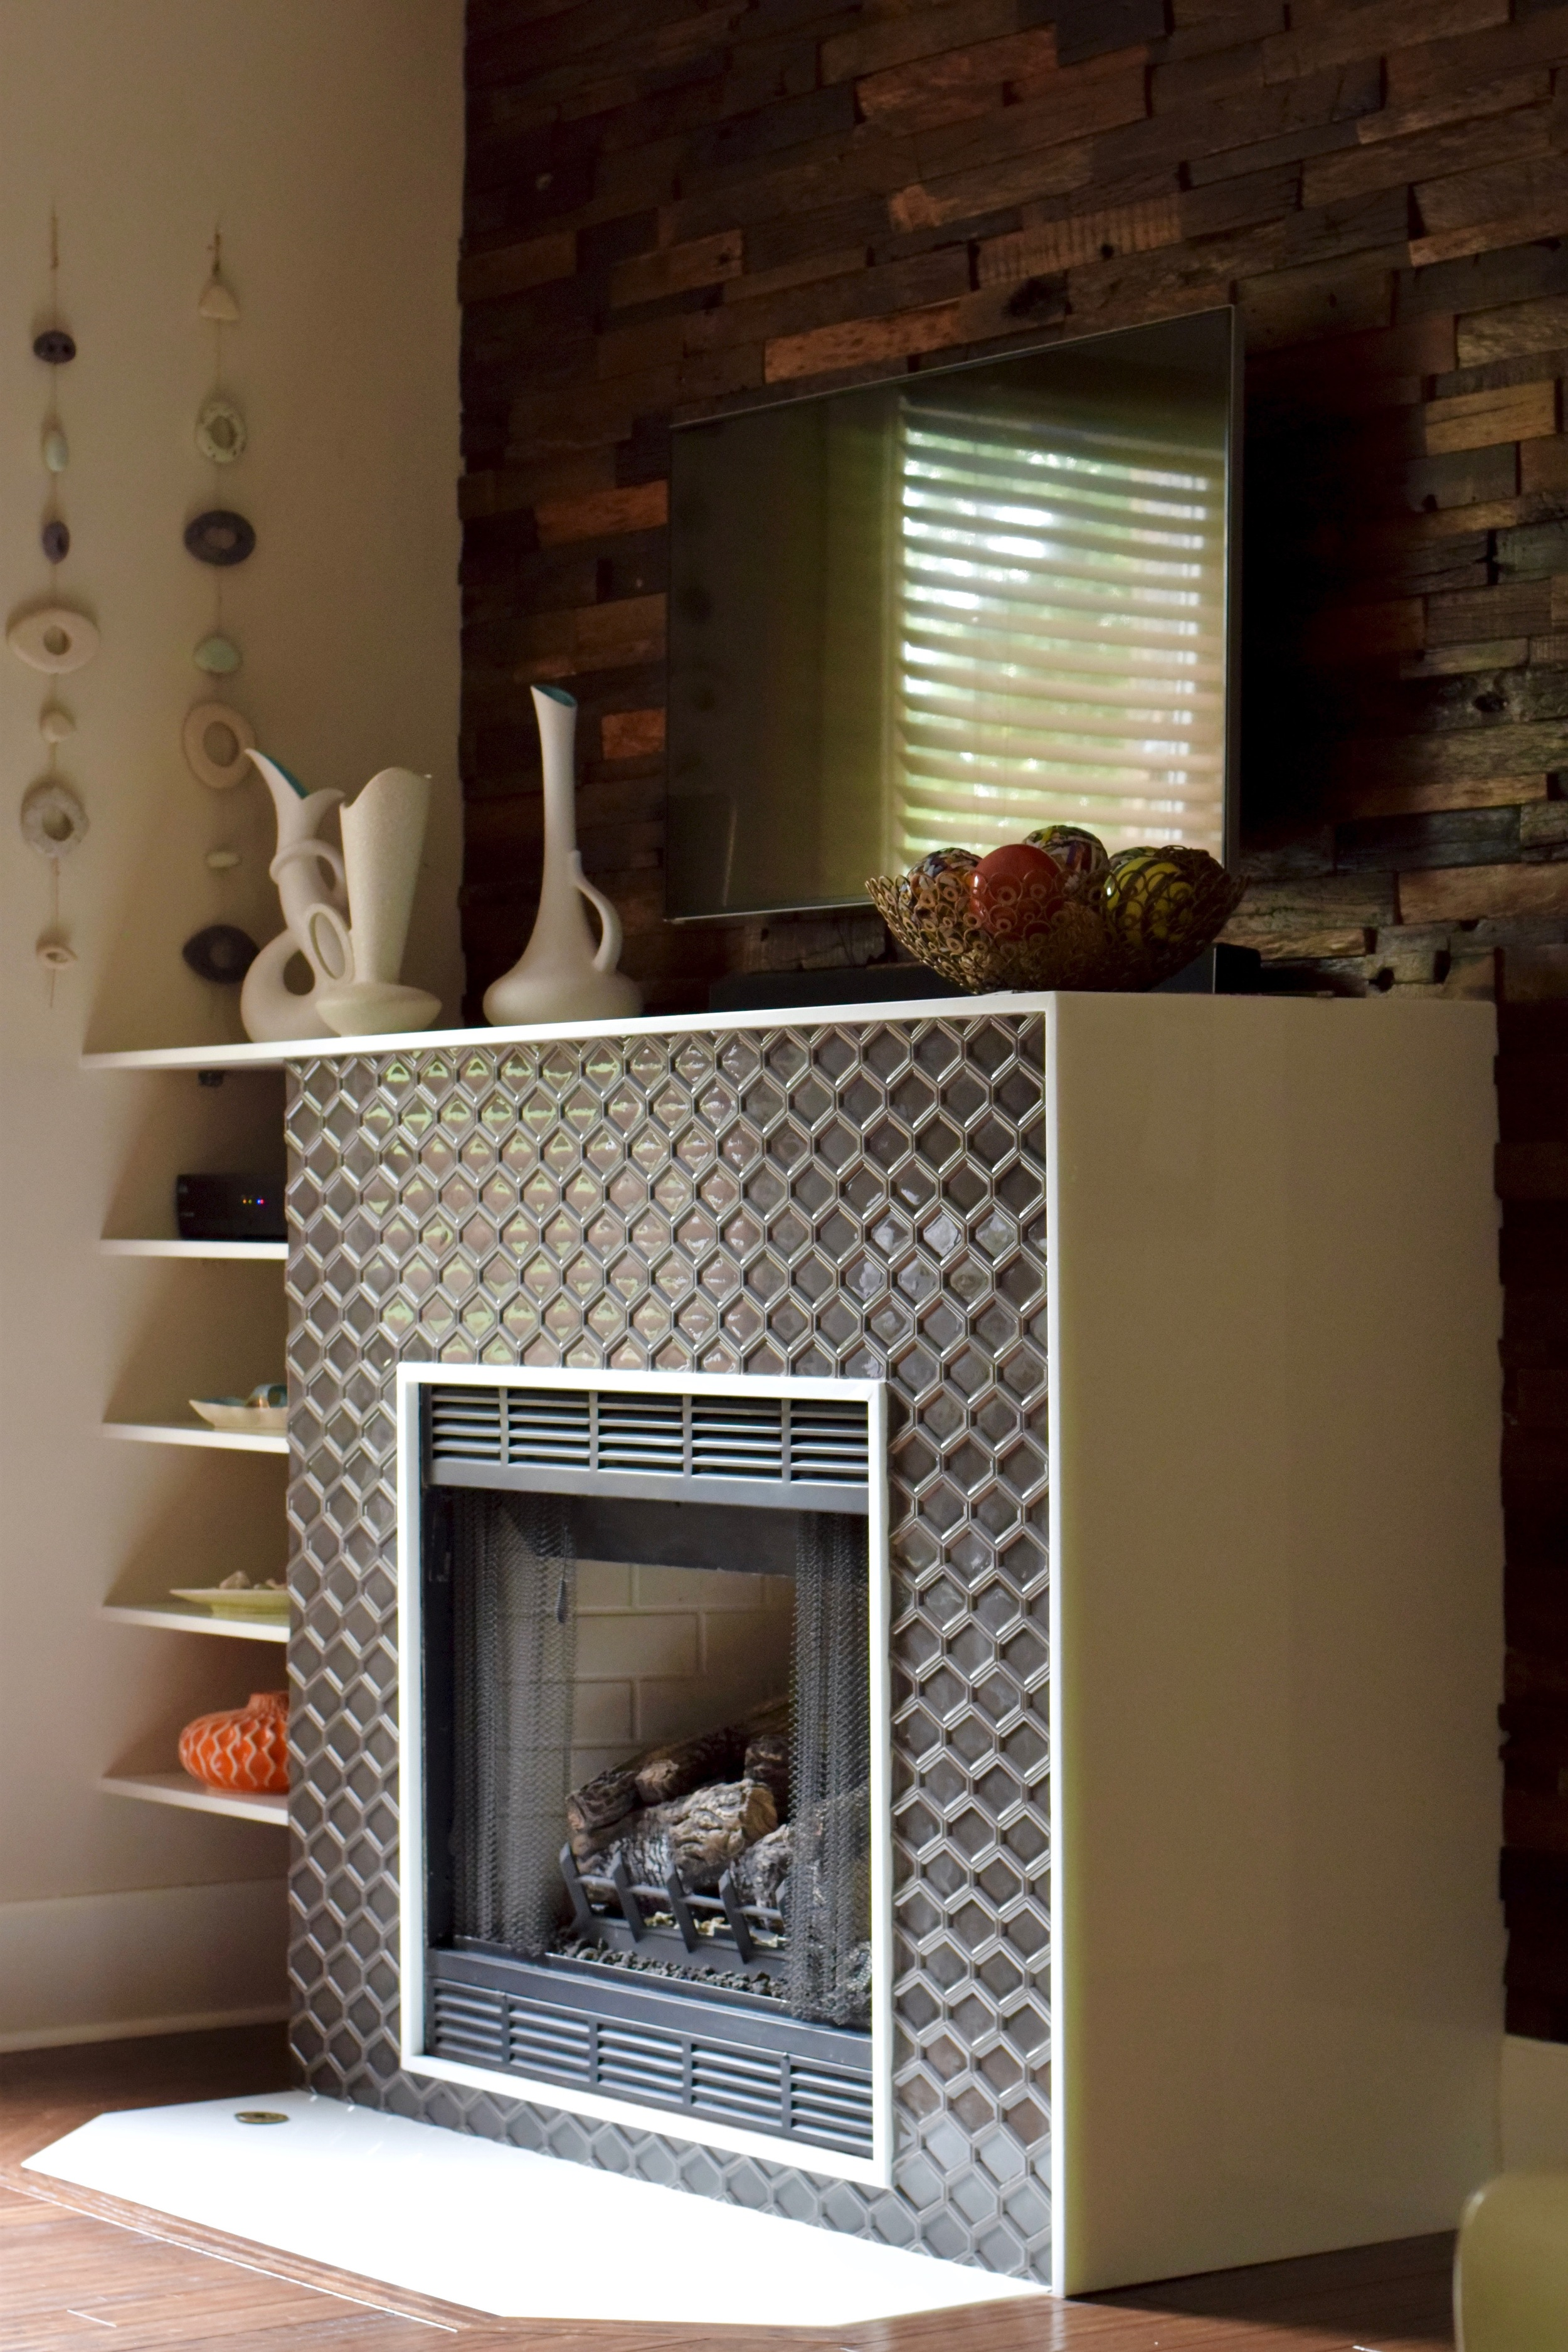 A custom modern glass fireplace with salvaged wood surround.